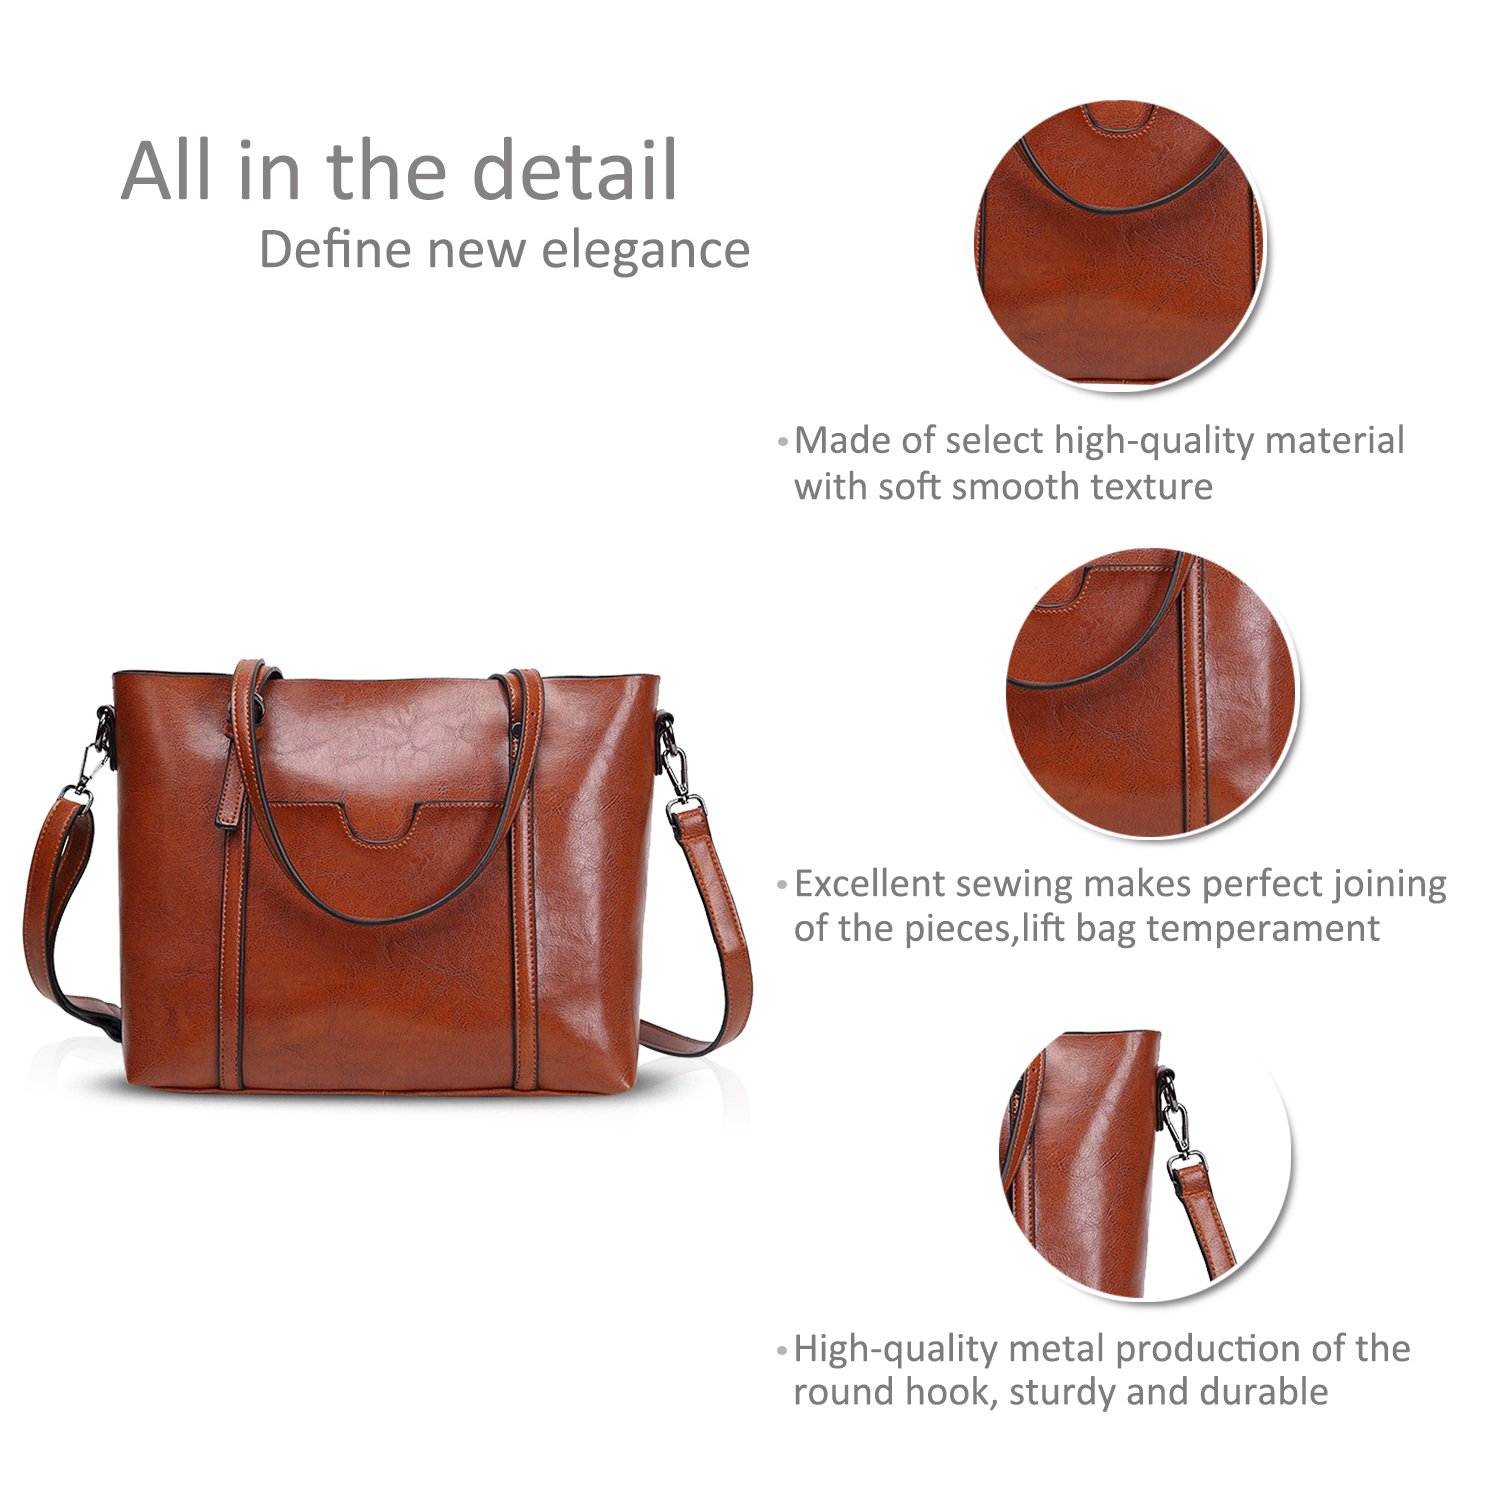 142bfa736d NICOLE DORIS New Tote Handbag Shoulder Bag Crossbody Bag Women Purse Large  Bag PU Leather Light Brown  Amazon.ca  Luggage   Bags